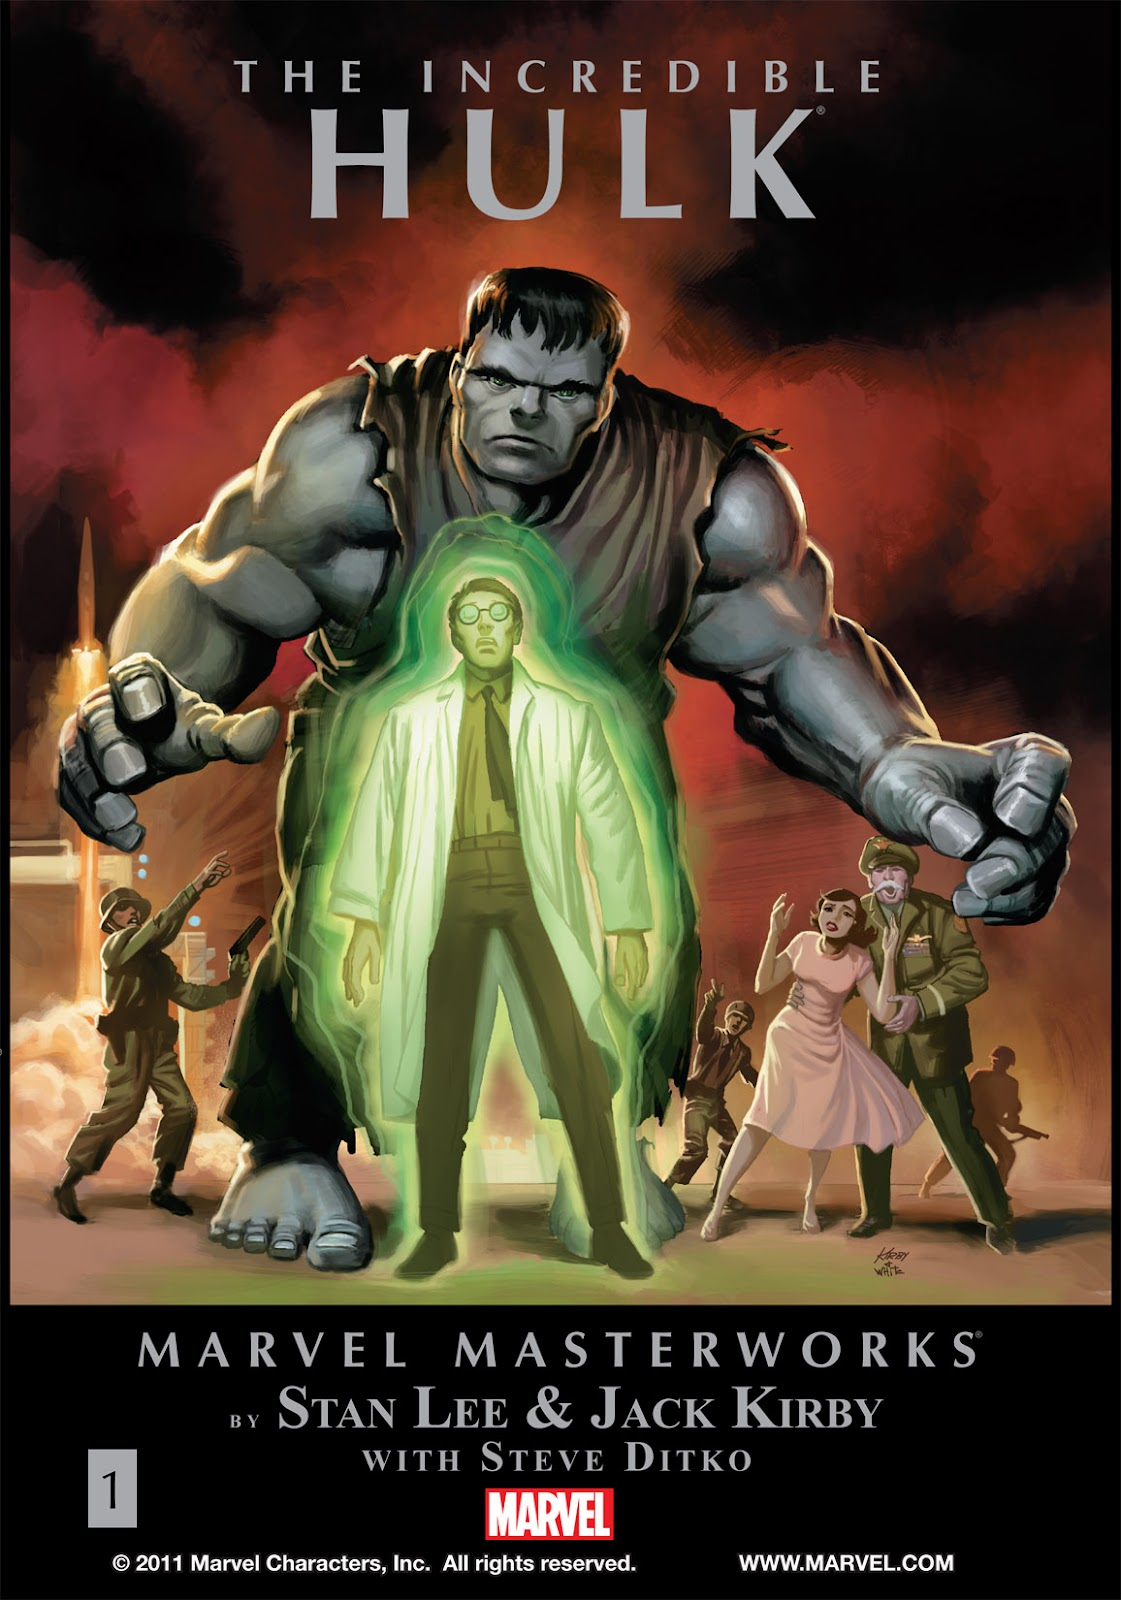 Read online Marvel Masterworks: The Incredible Hulk comic -  Issue # TPB 1 (Part 1) - 1